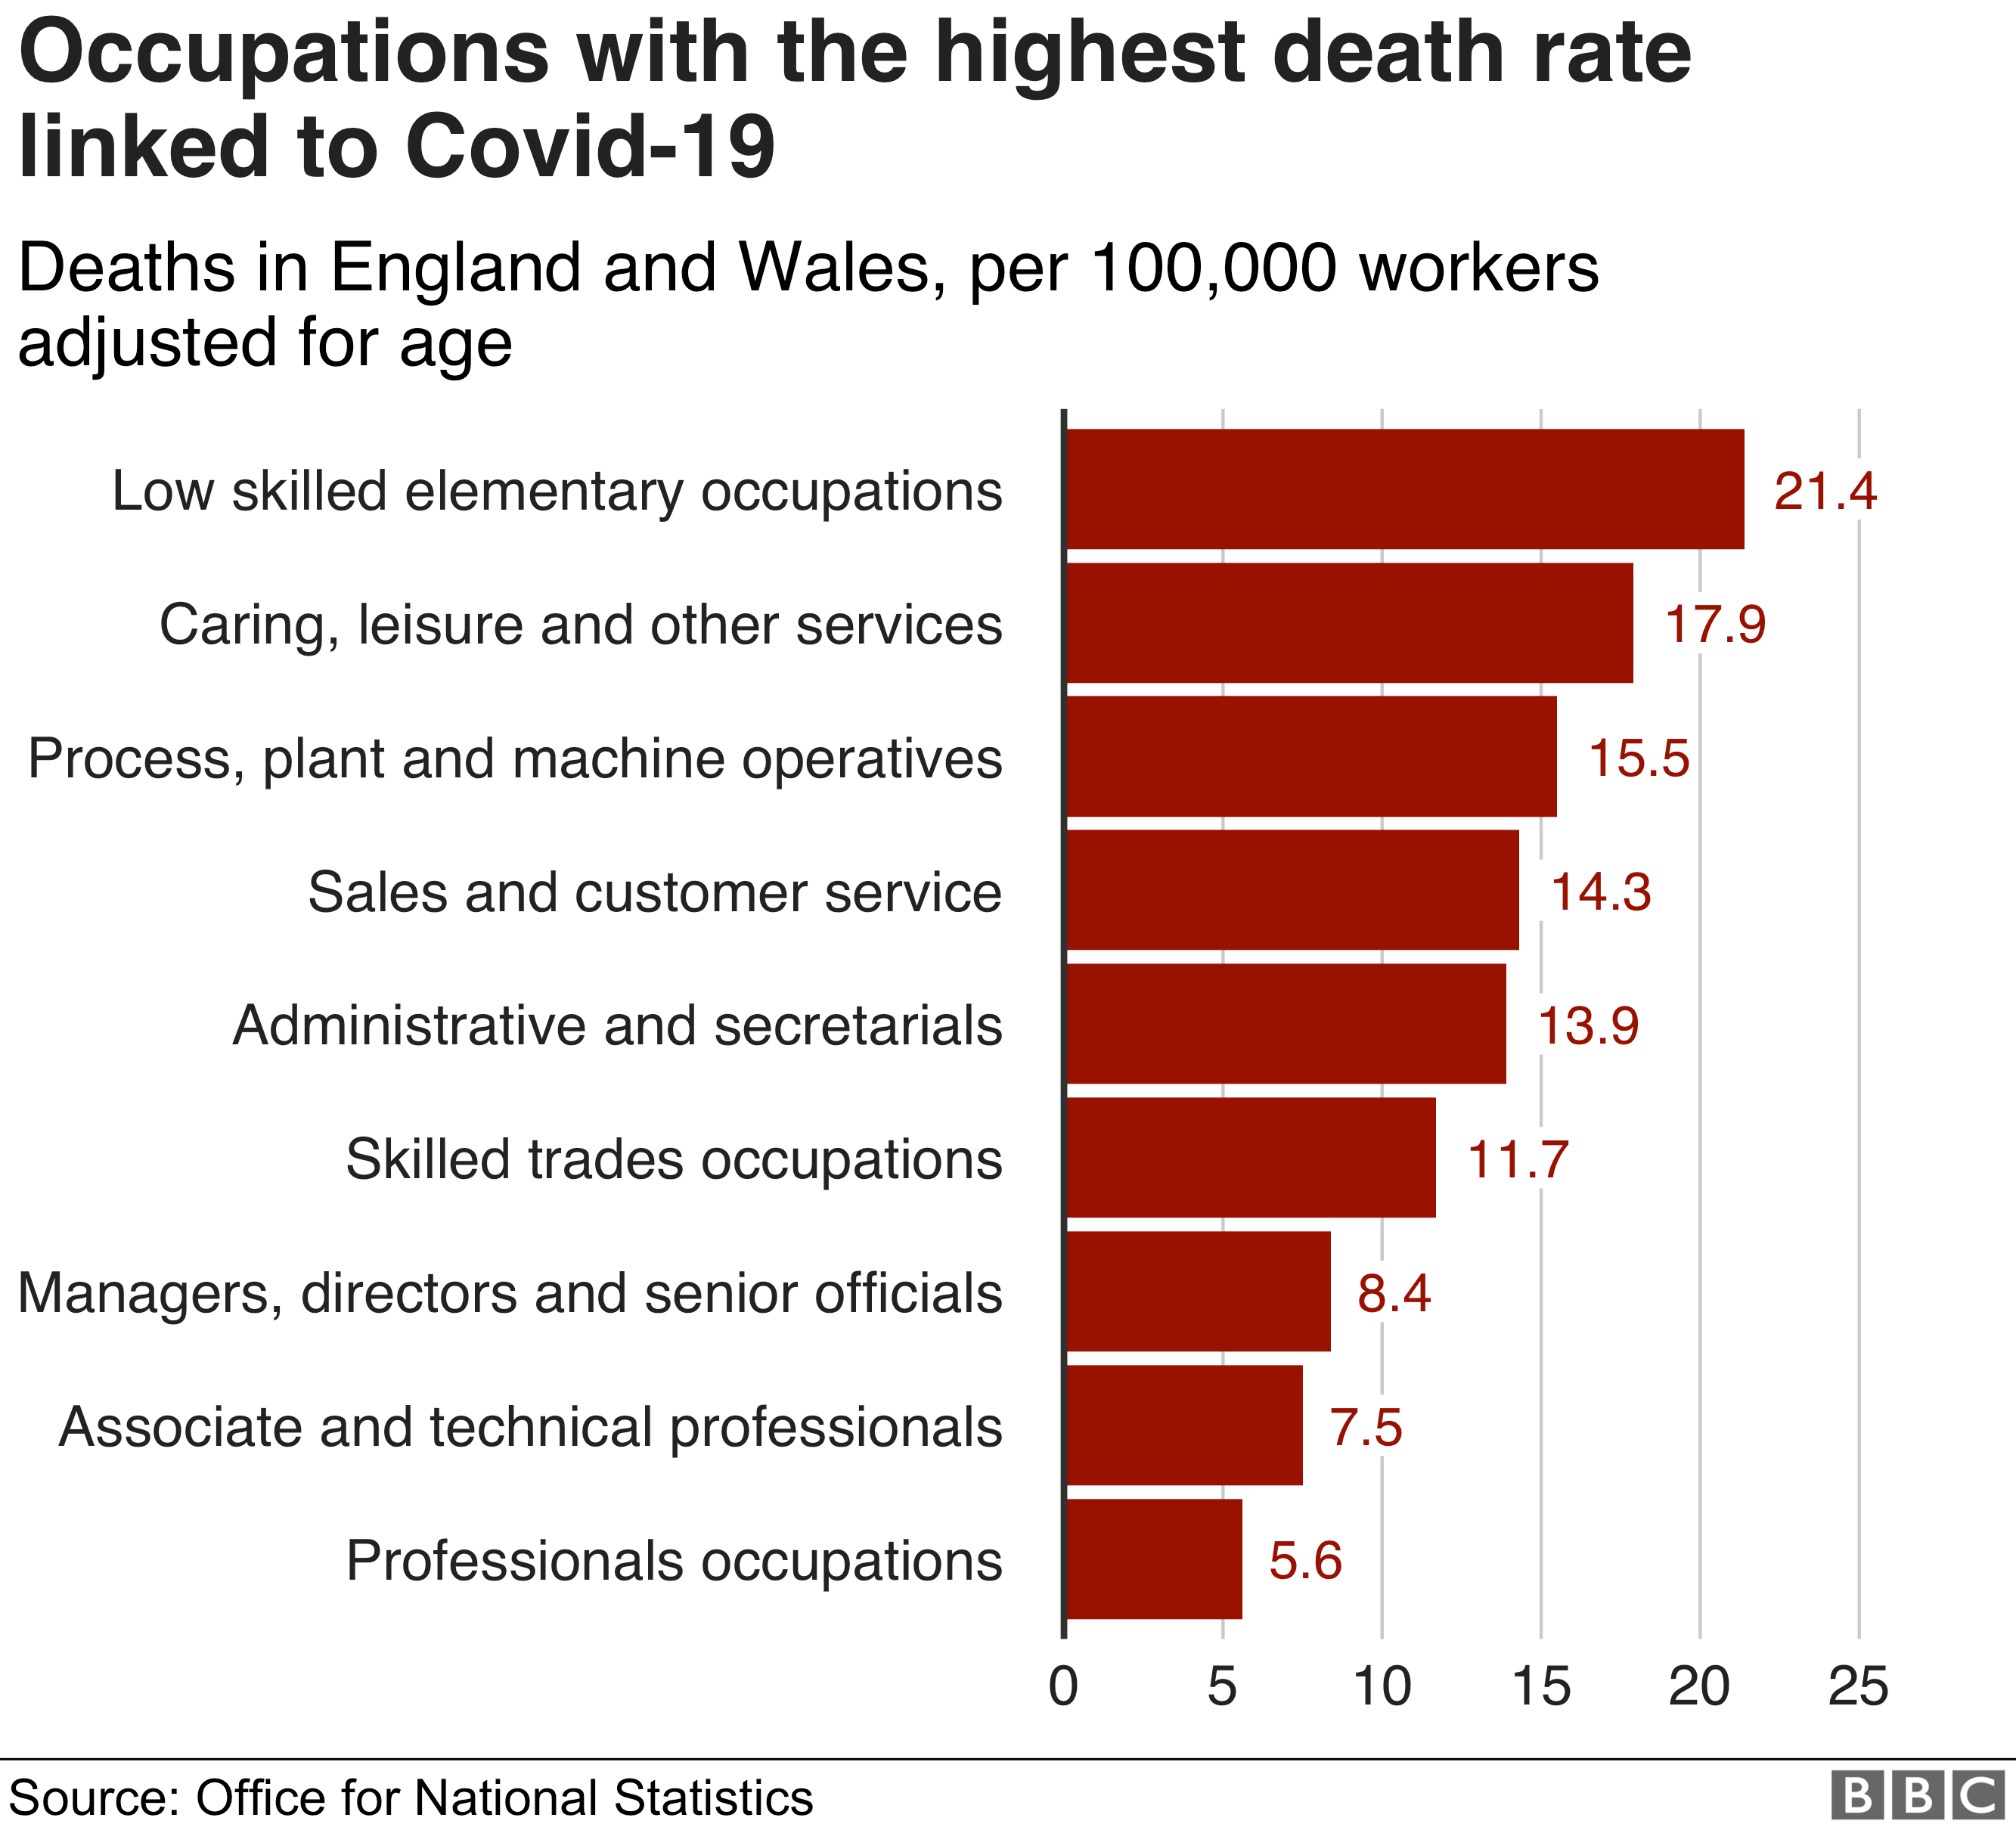 Occupations with highest death rates linked to Covid-19